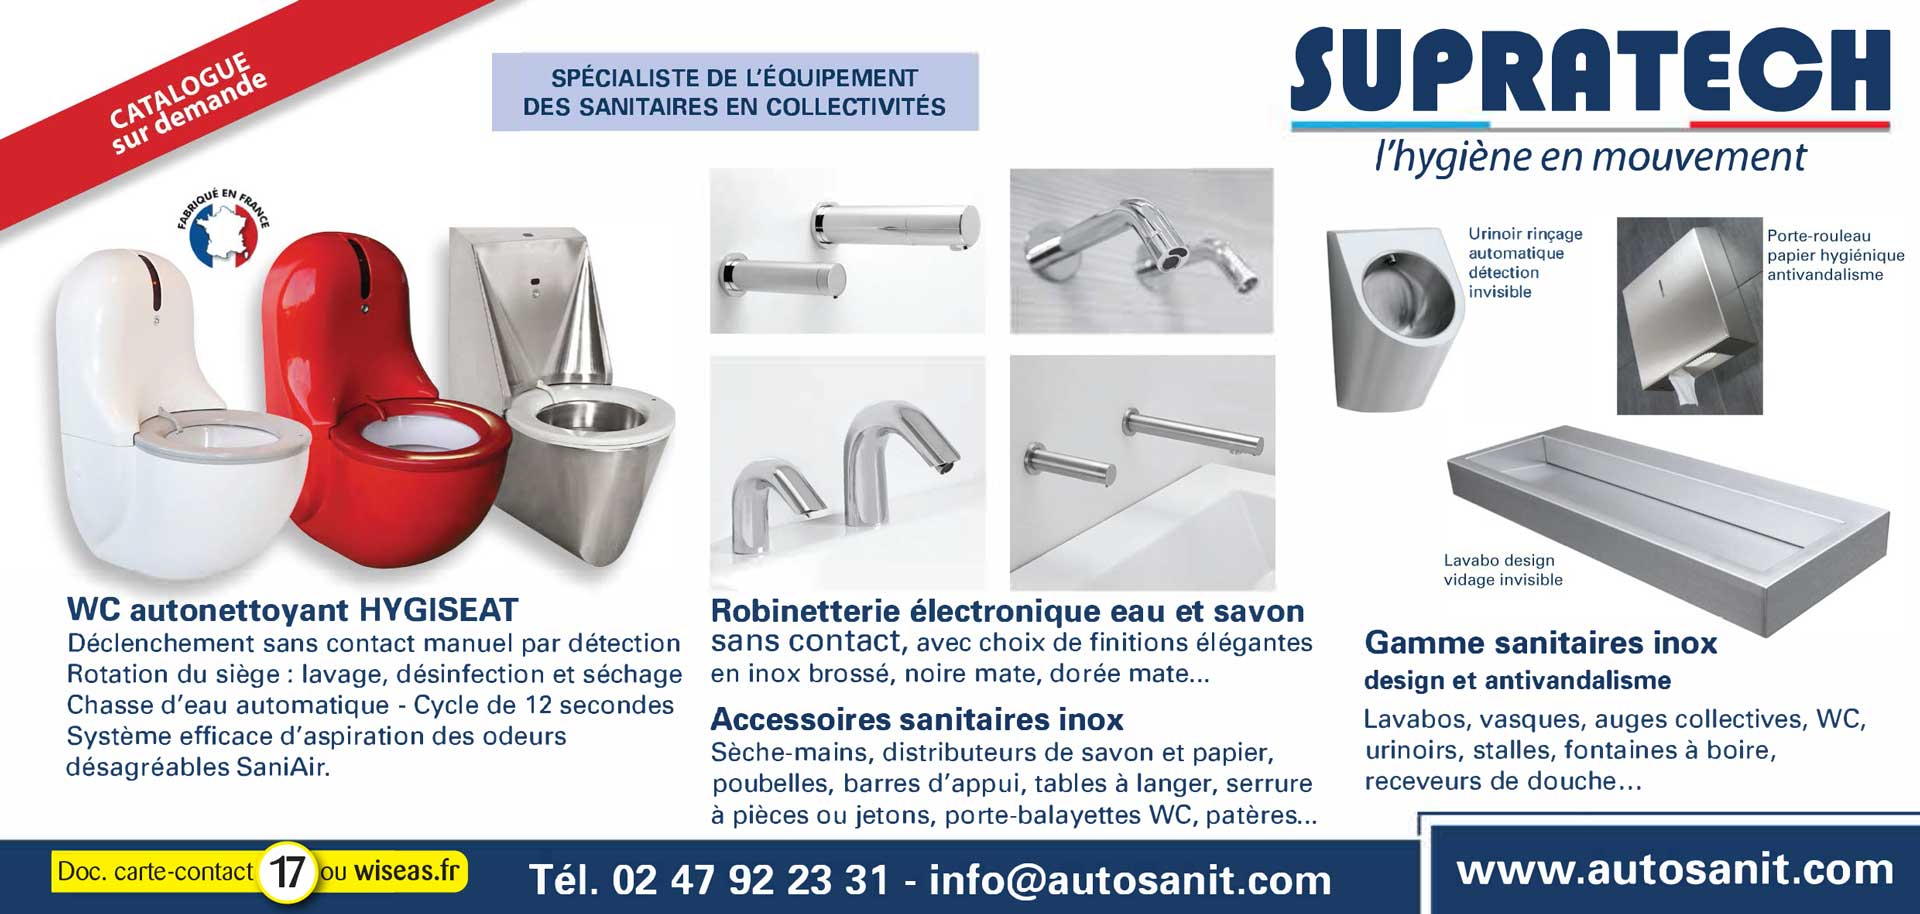 WC Hygiseat - robinetterie - lavabos - vasques inox